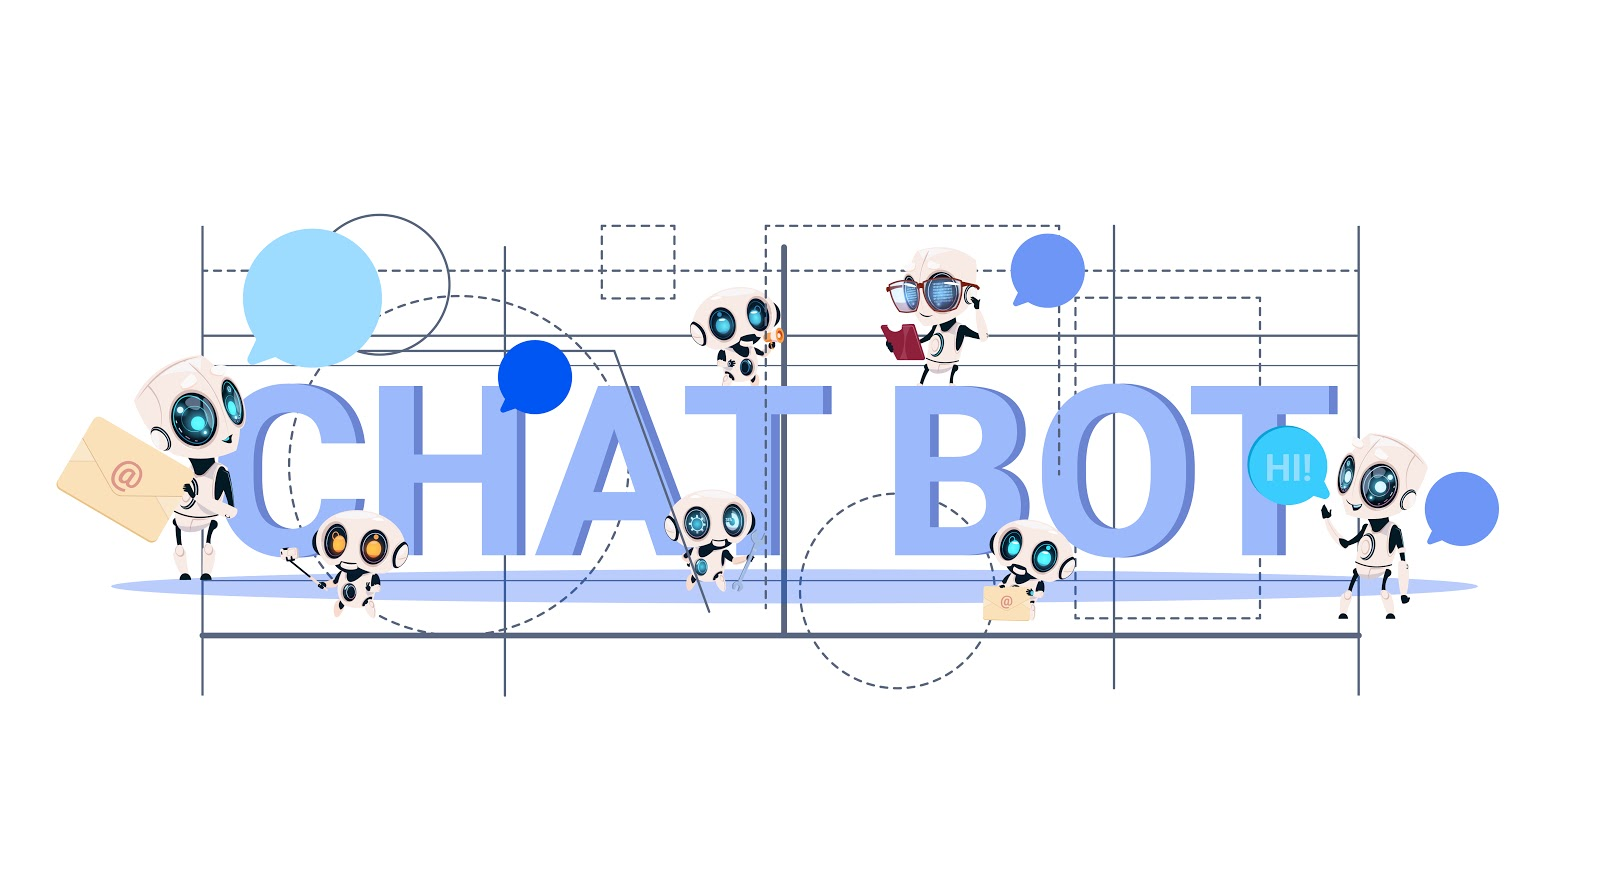 "Graphic with text ""chatbot"", geometric shapes, lines, and several robot like figures"